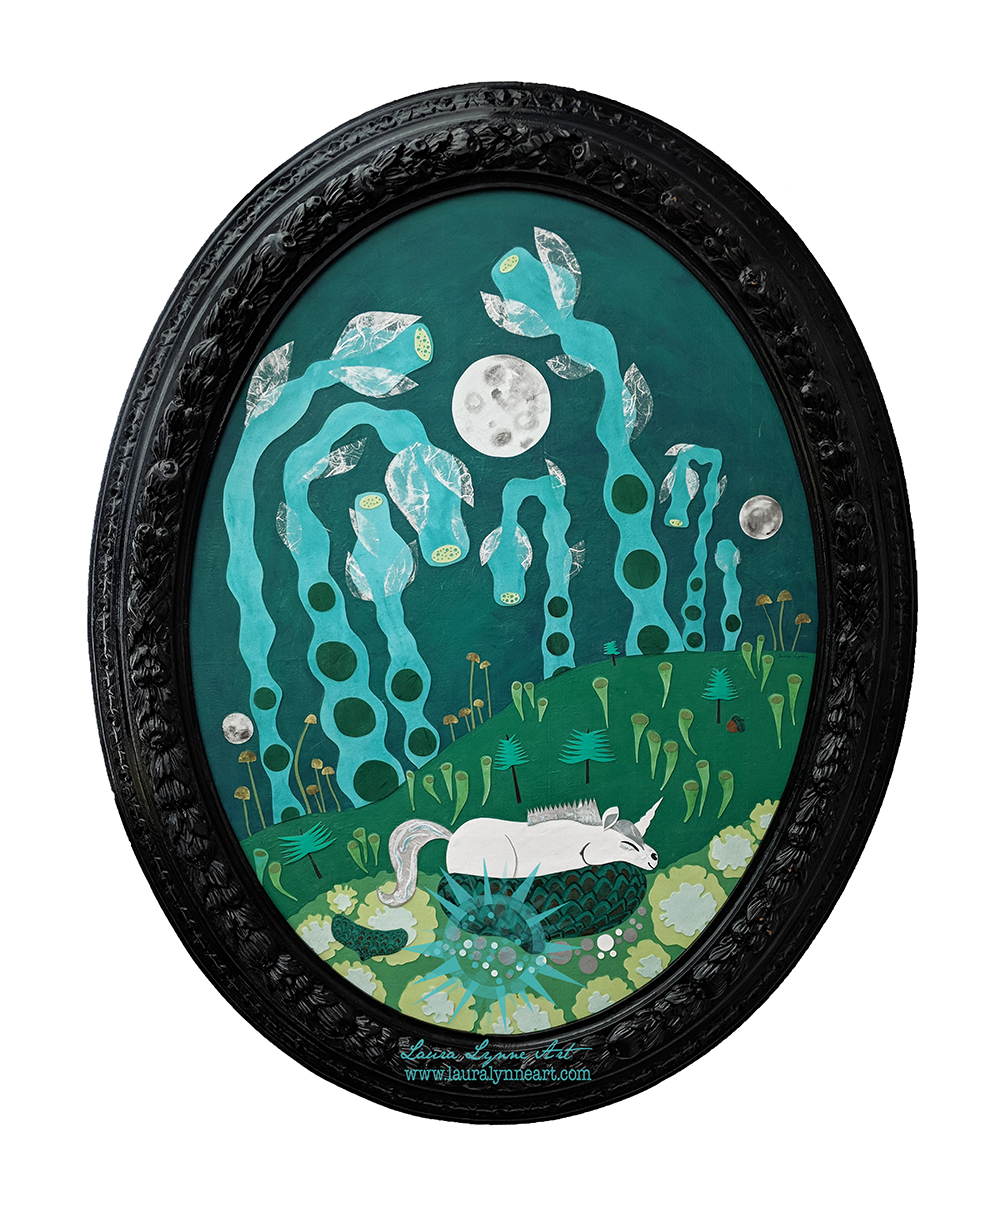 Oval Green Unicorn Mixed Media Art with Vintage Oval Frame